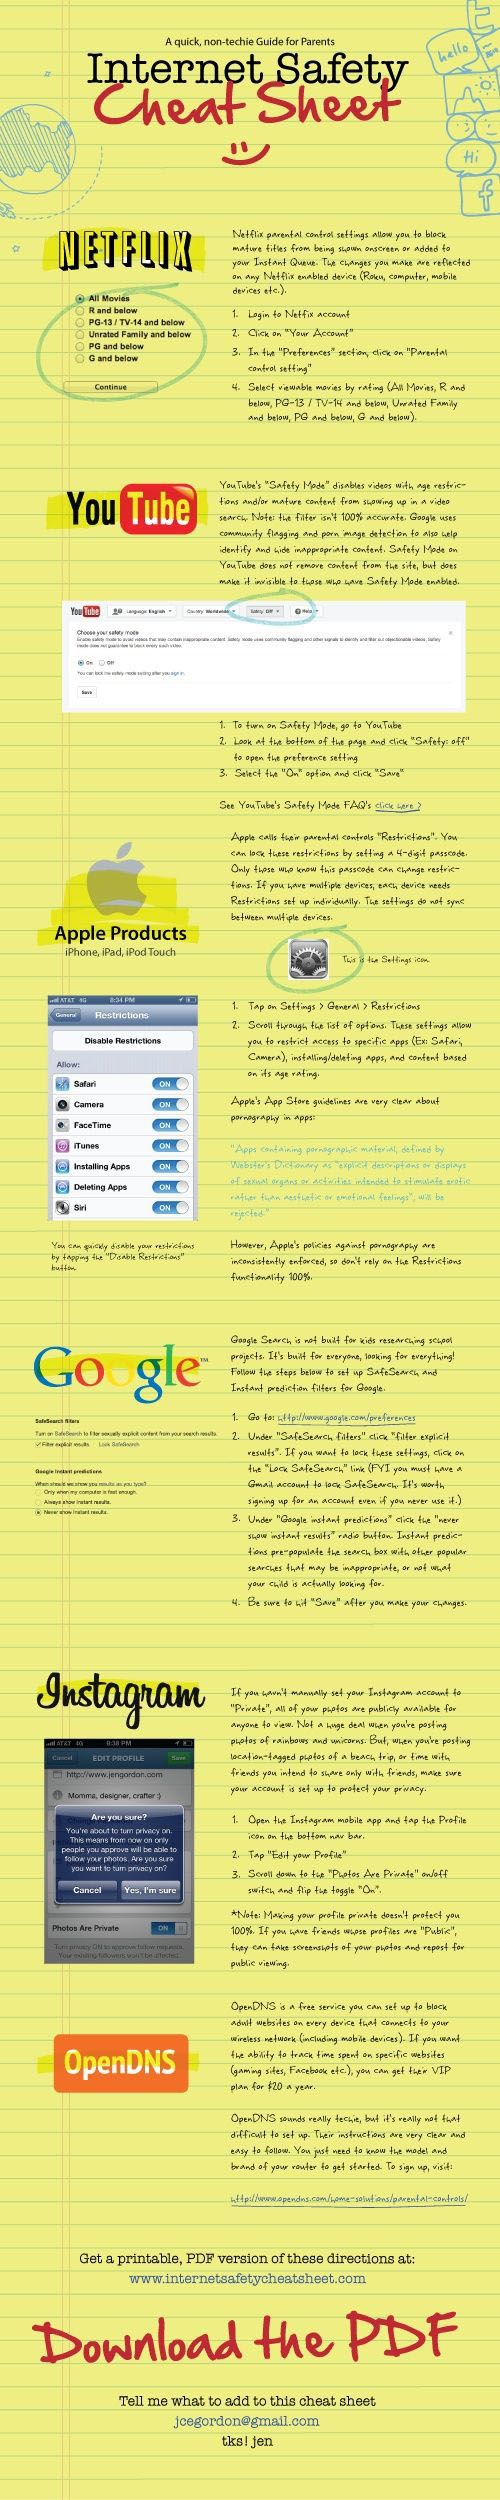 internet-safety-cheat-sheet